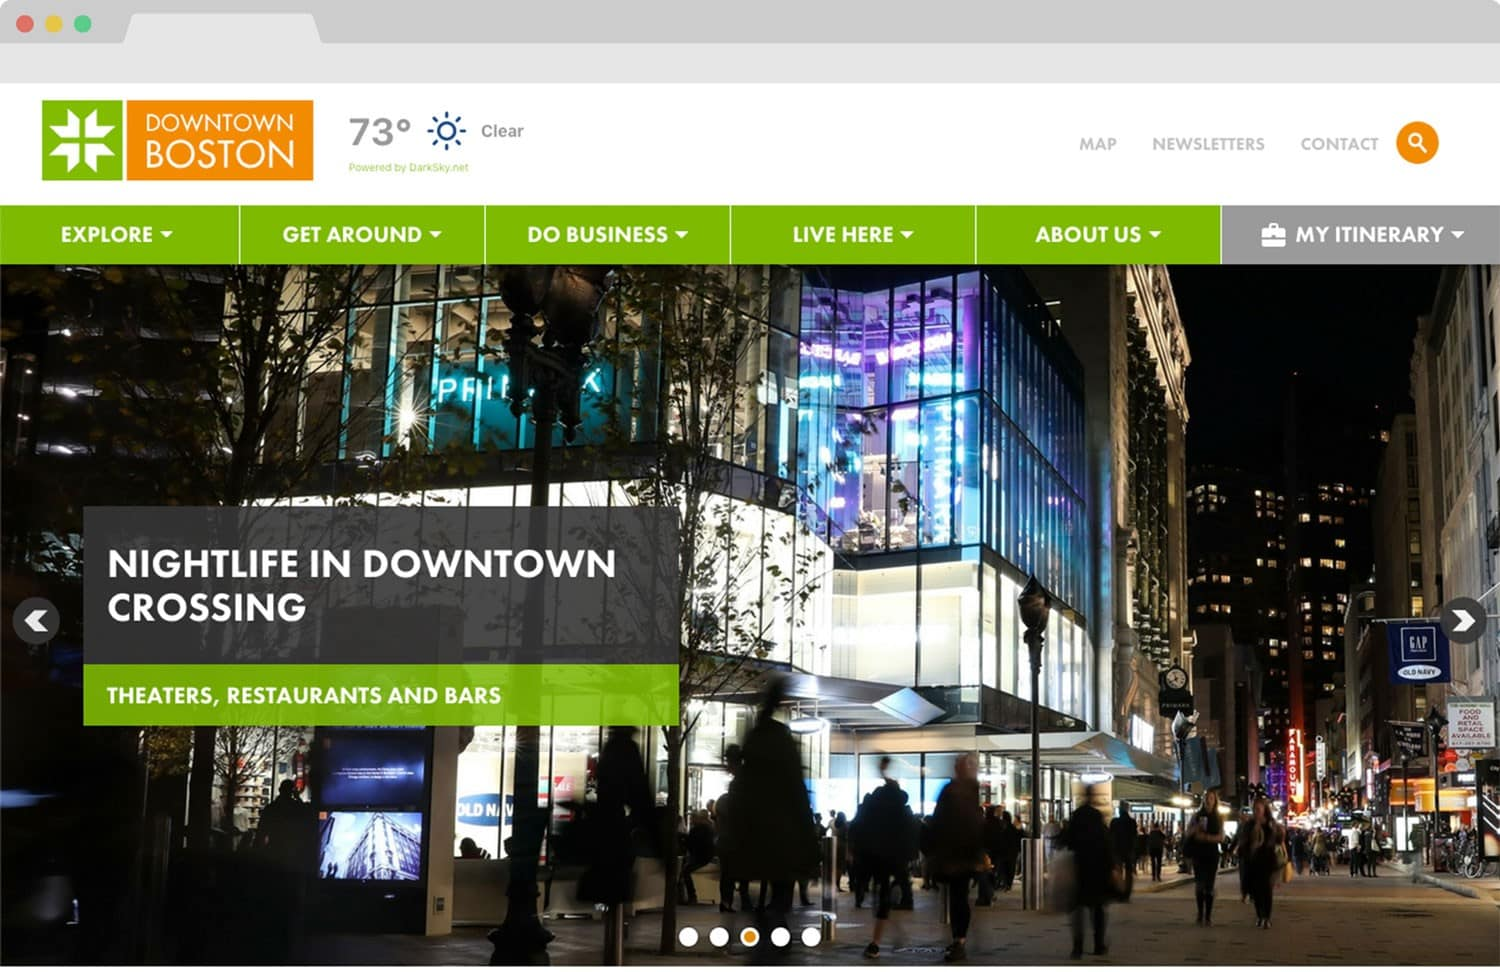 Website design - Homepage for Boston BID